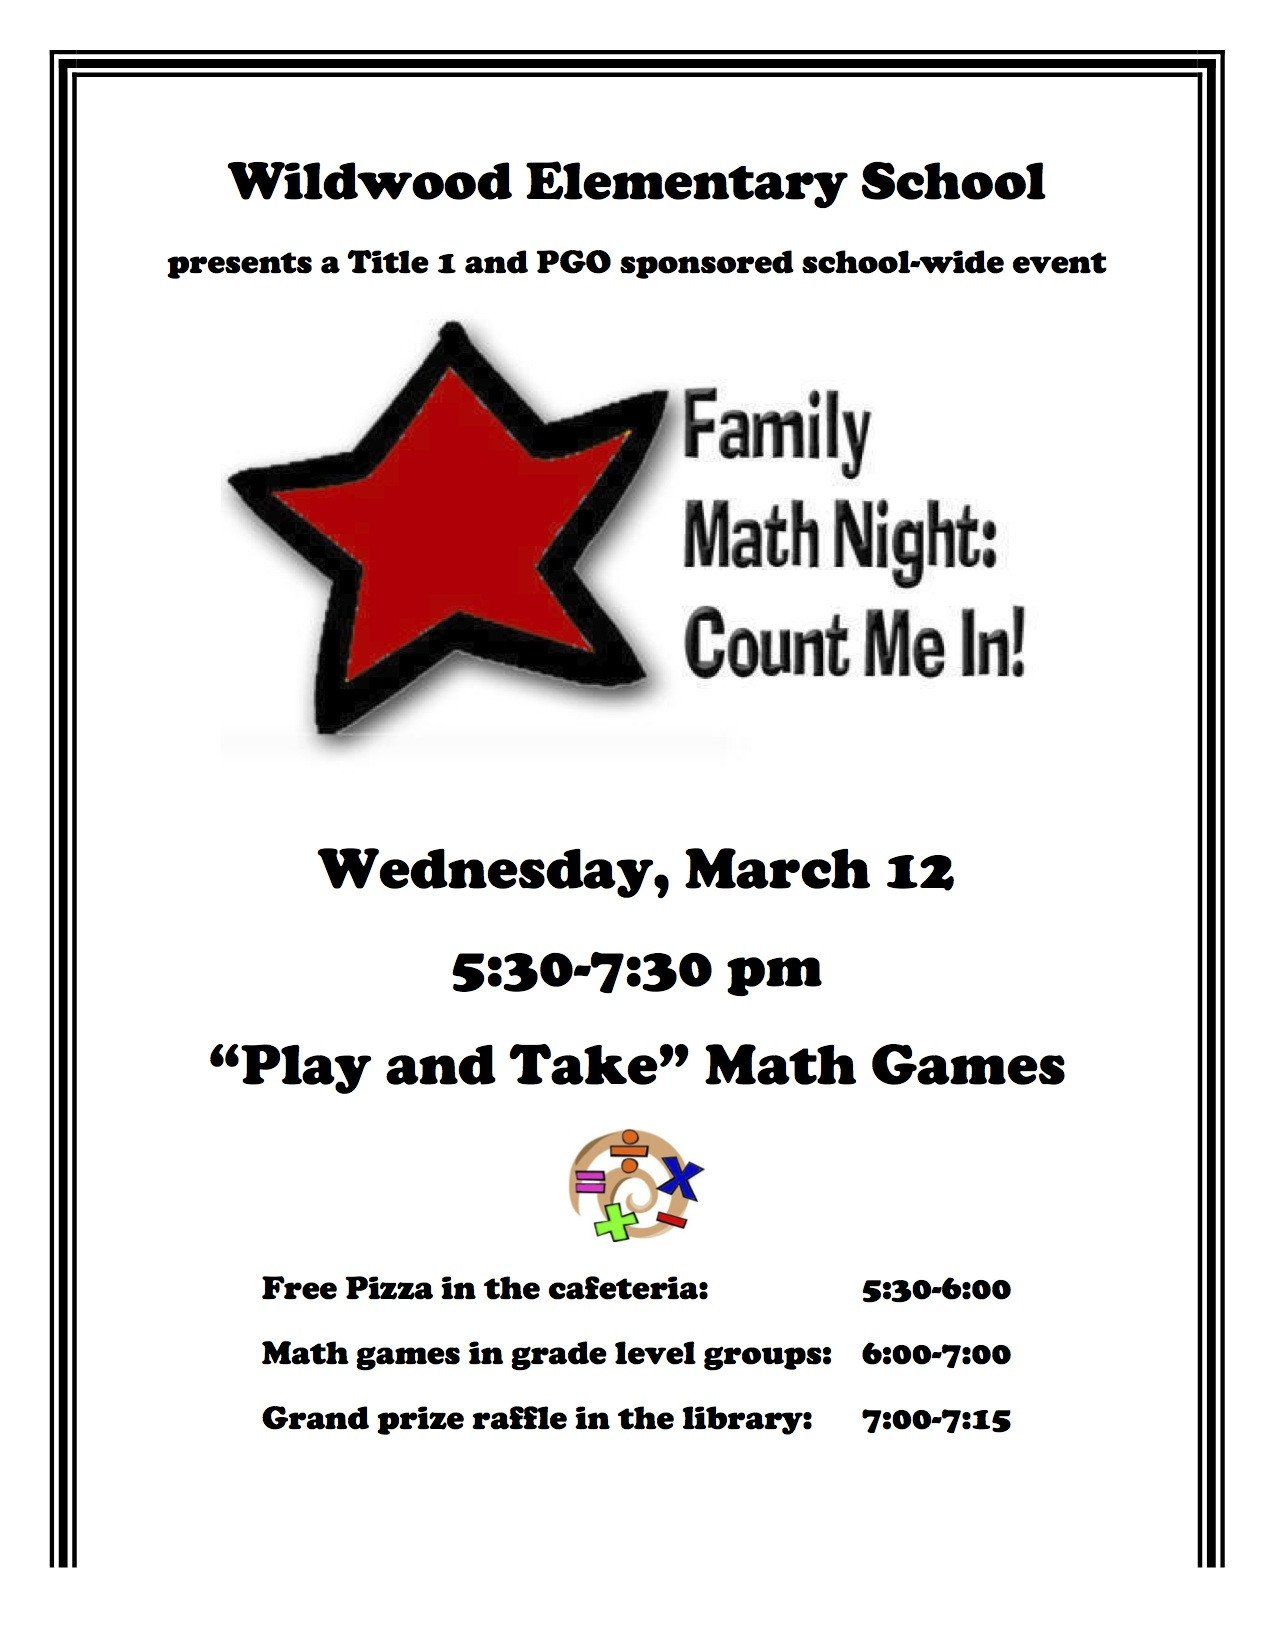 Family Math Night Flyers Wildwood Family Math Night – March 12